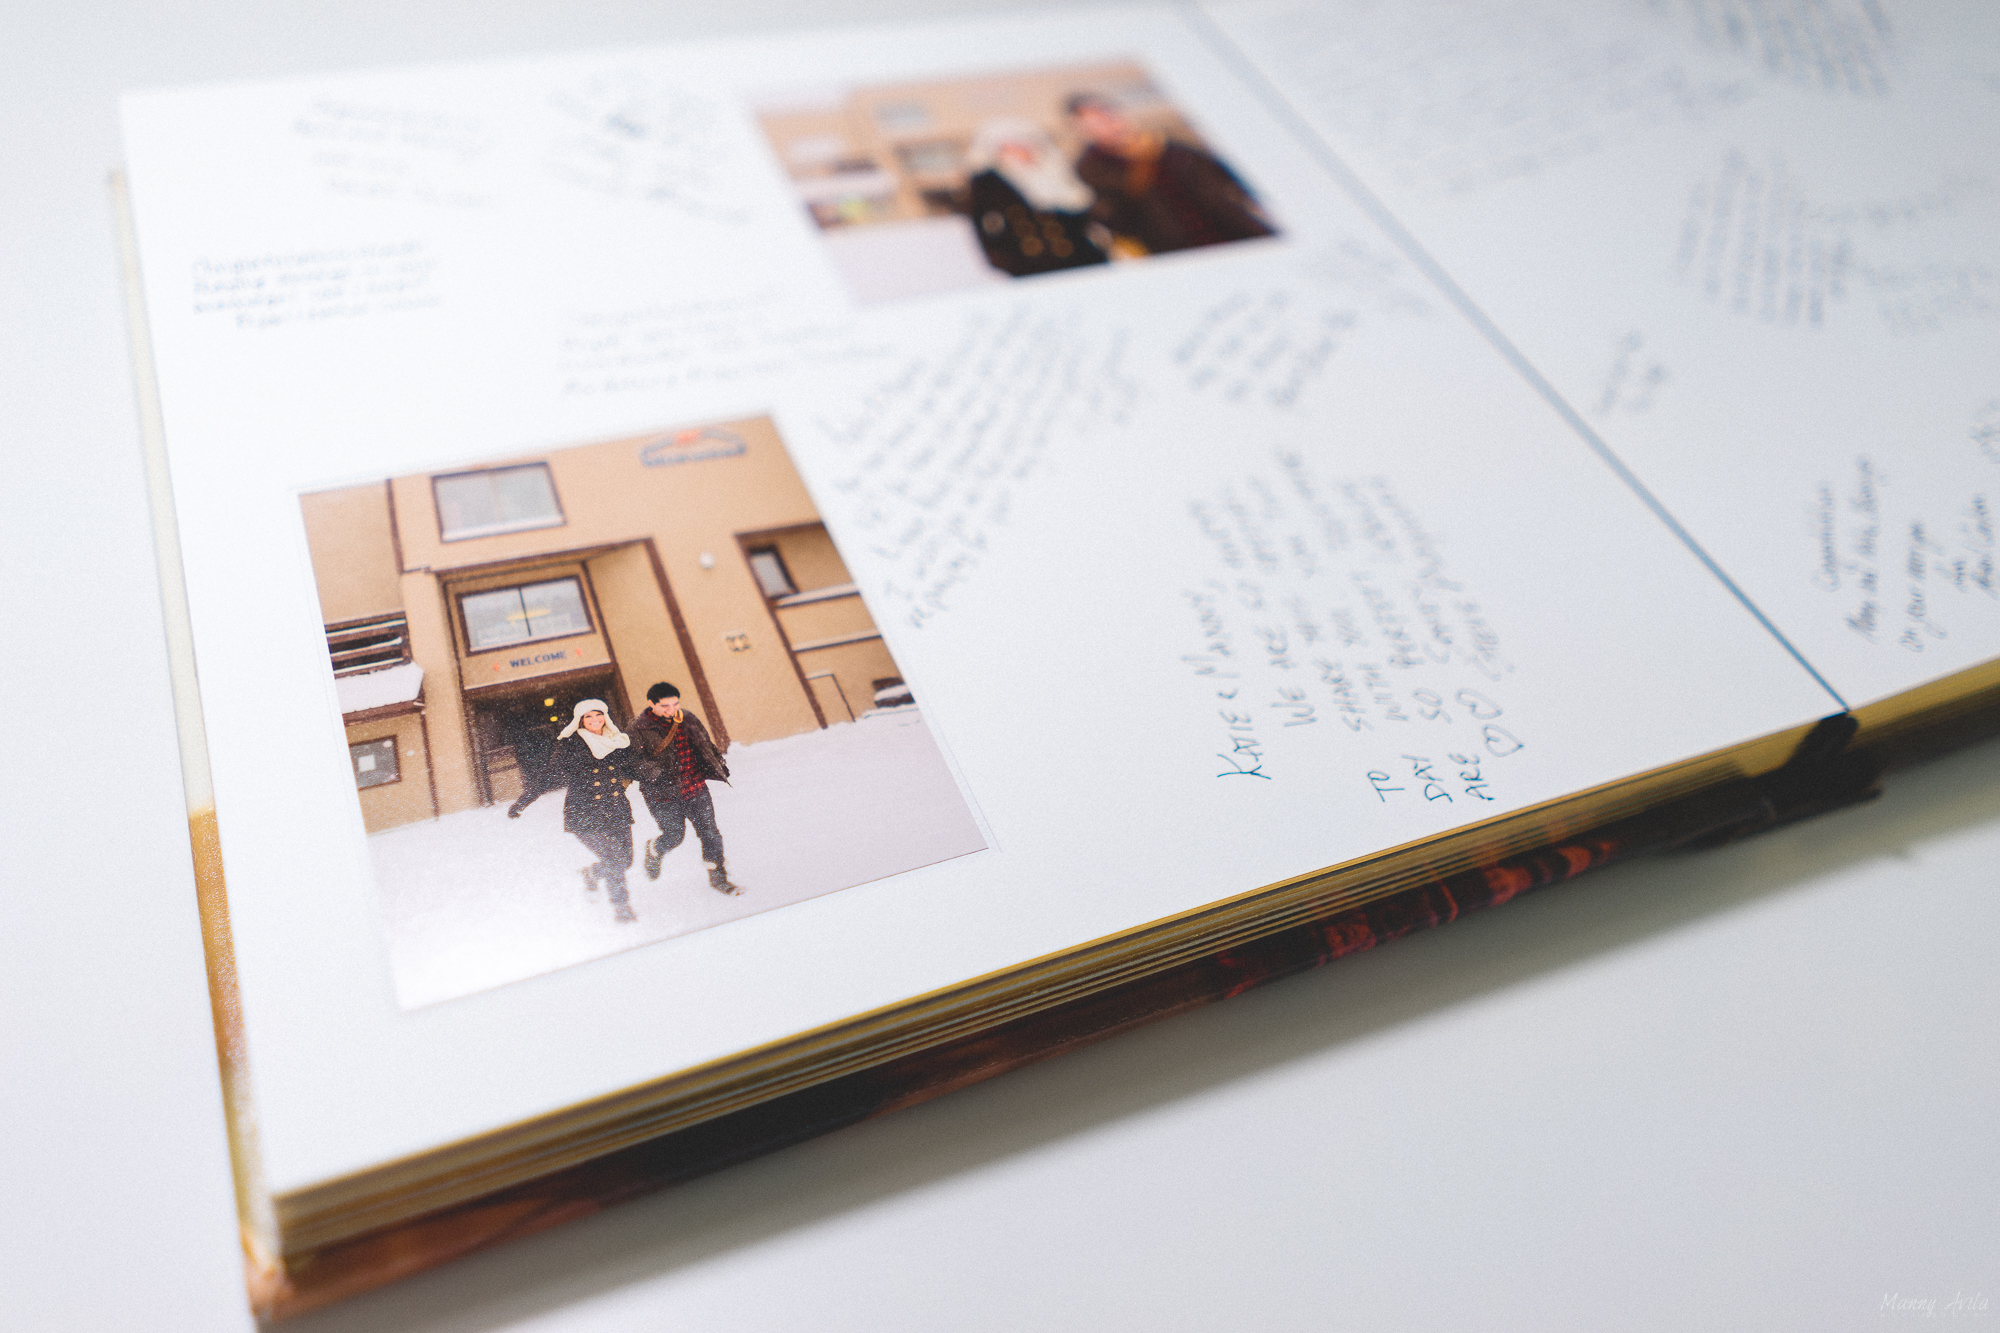 We had a large wedding of 400 guests so we received quite of bit of awesome notes in our book.